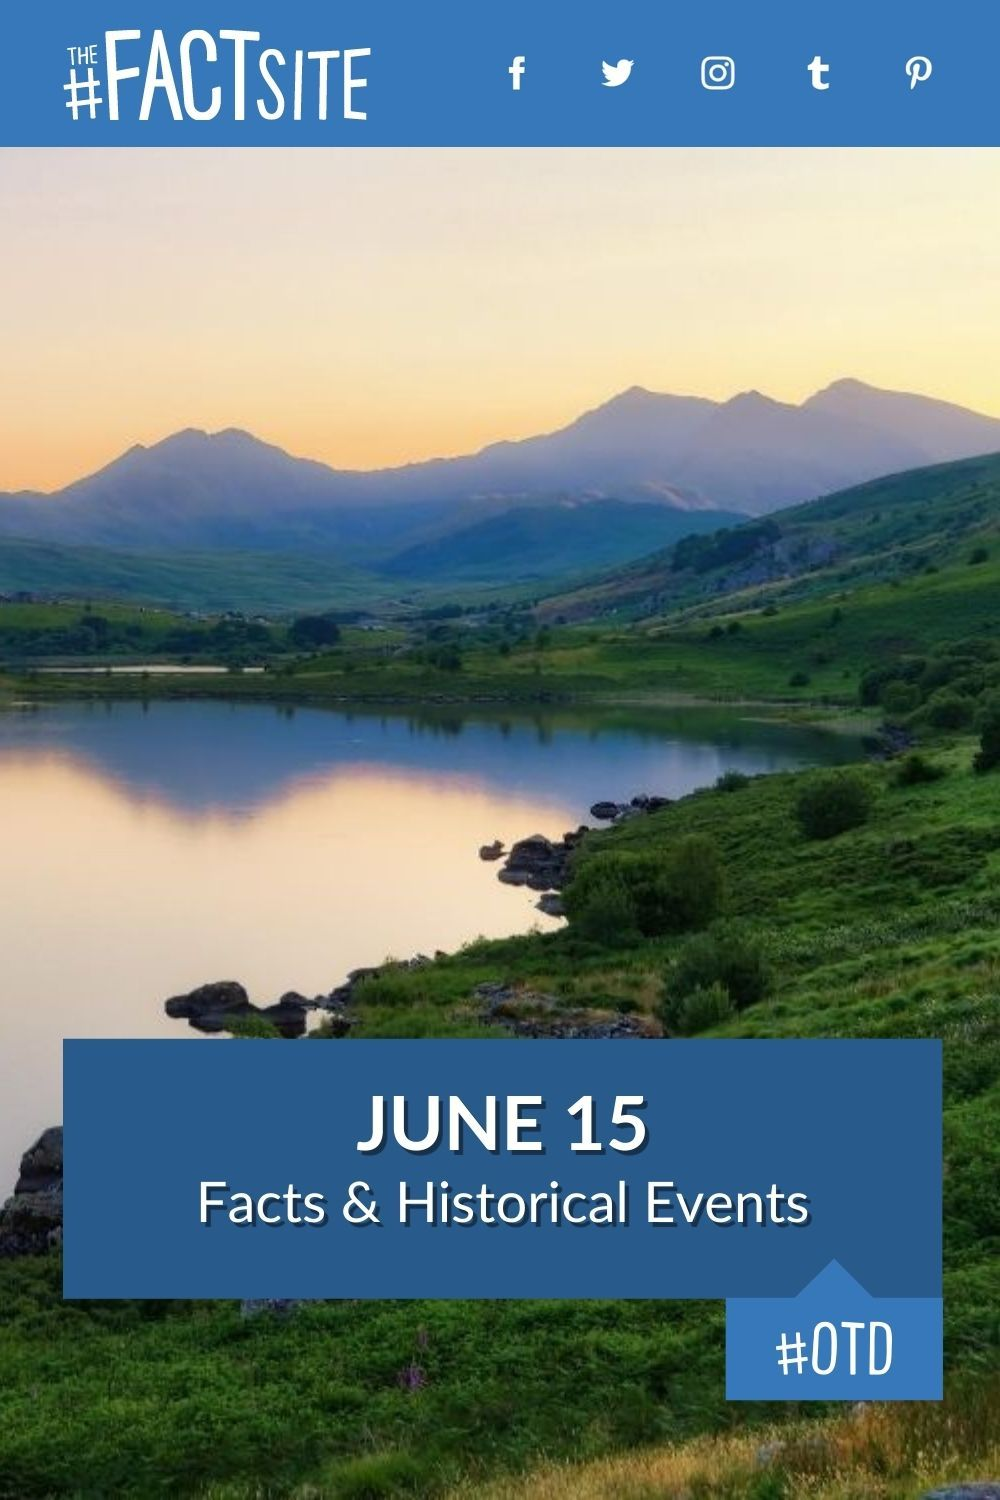 Facts & Historic Events That Happened on June 15